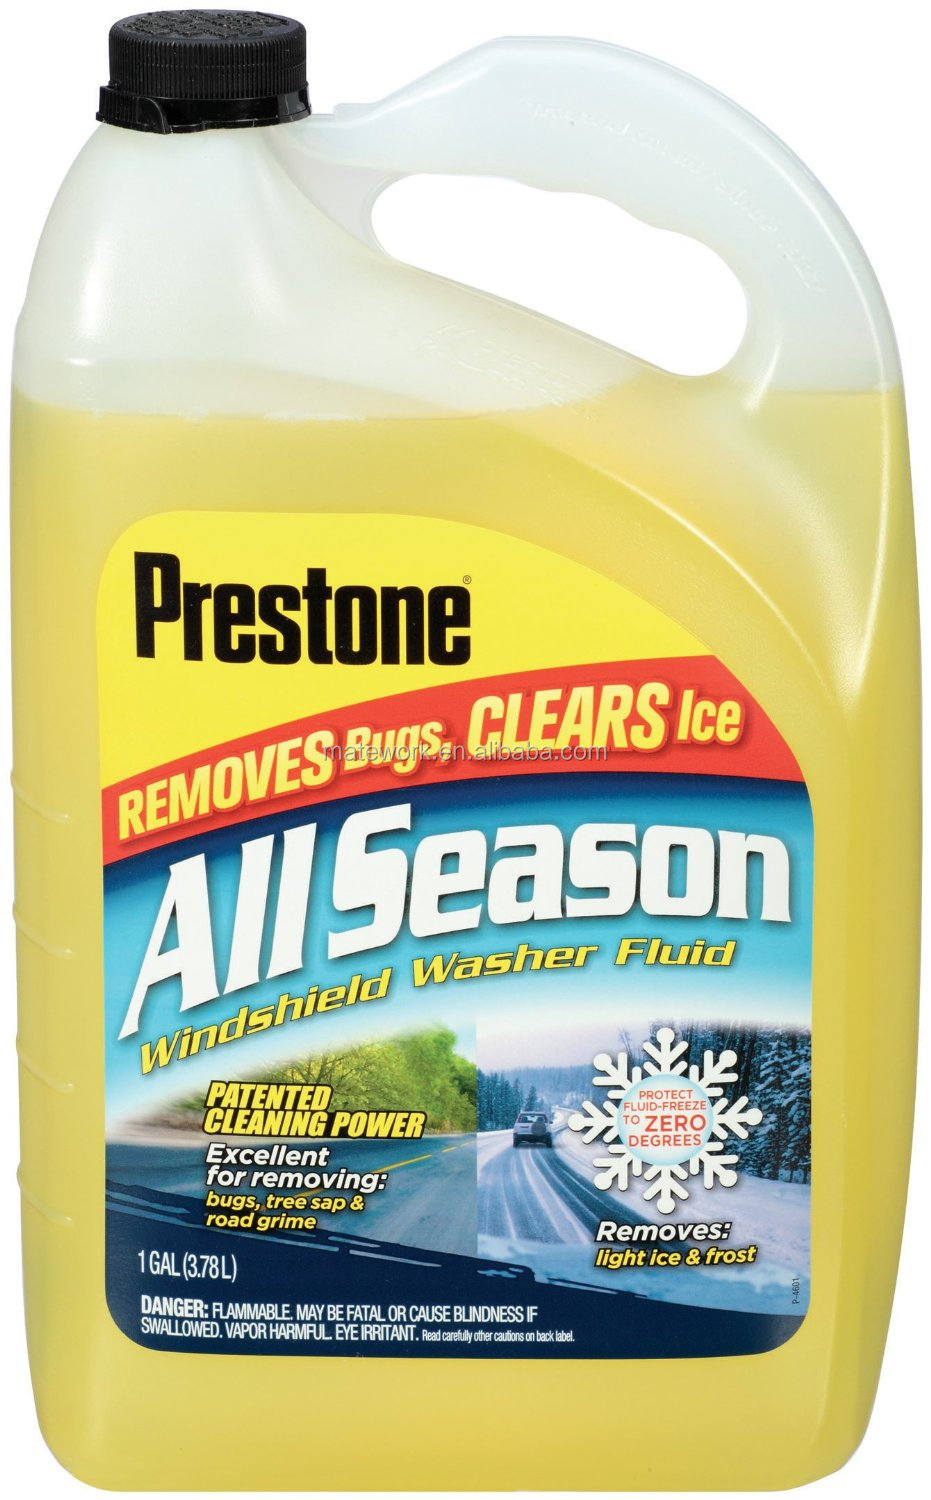 Glass Cleaner Windshield Washer Fluid - 1 Gallon